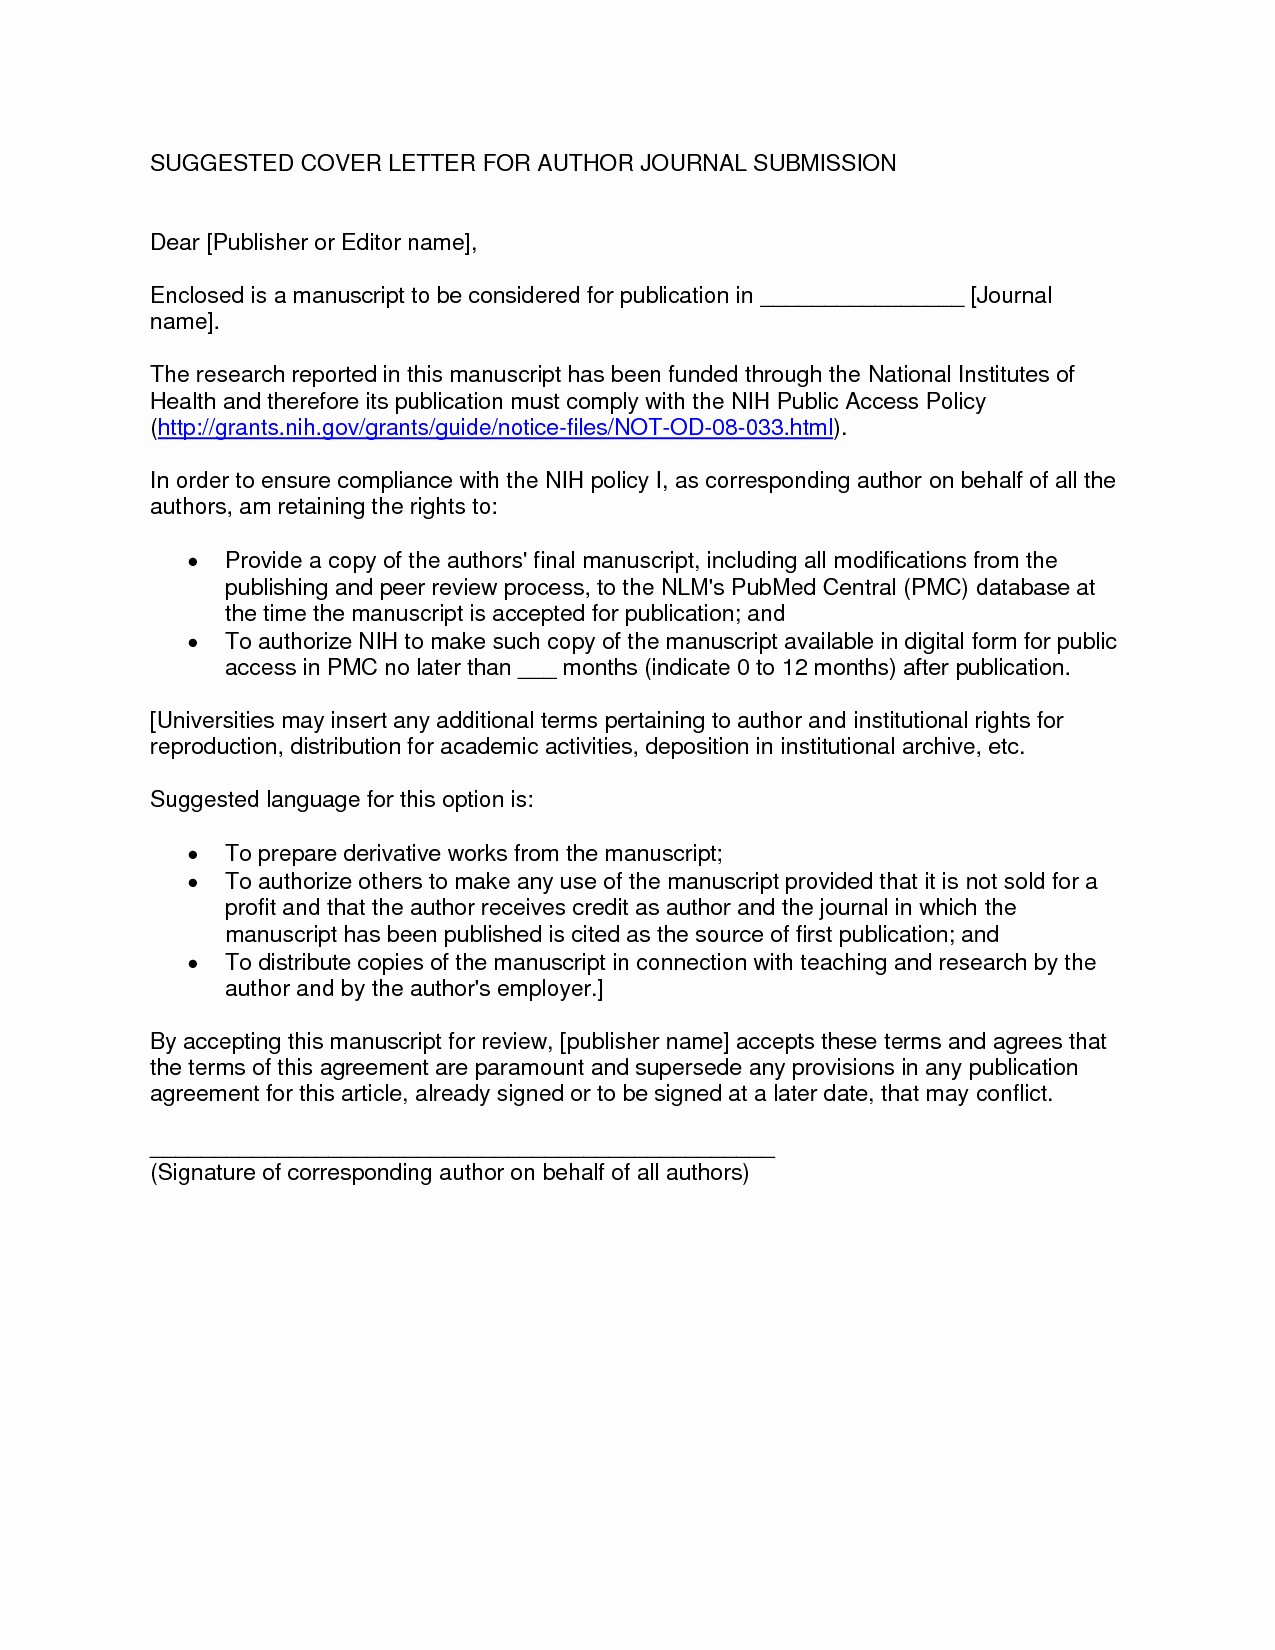 Professional Resume Builder - Free Cover Letter Builder Download Best Resume Builder Free Print